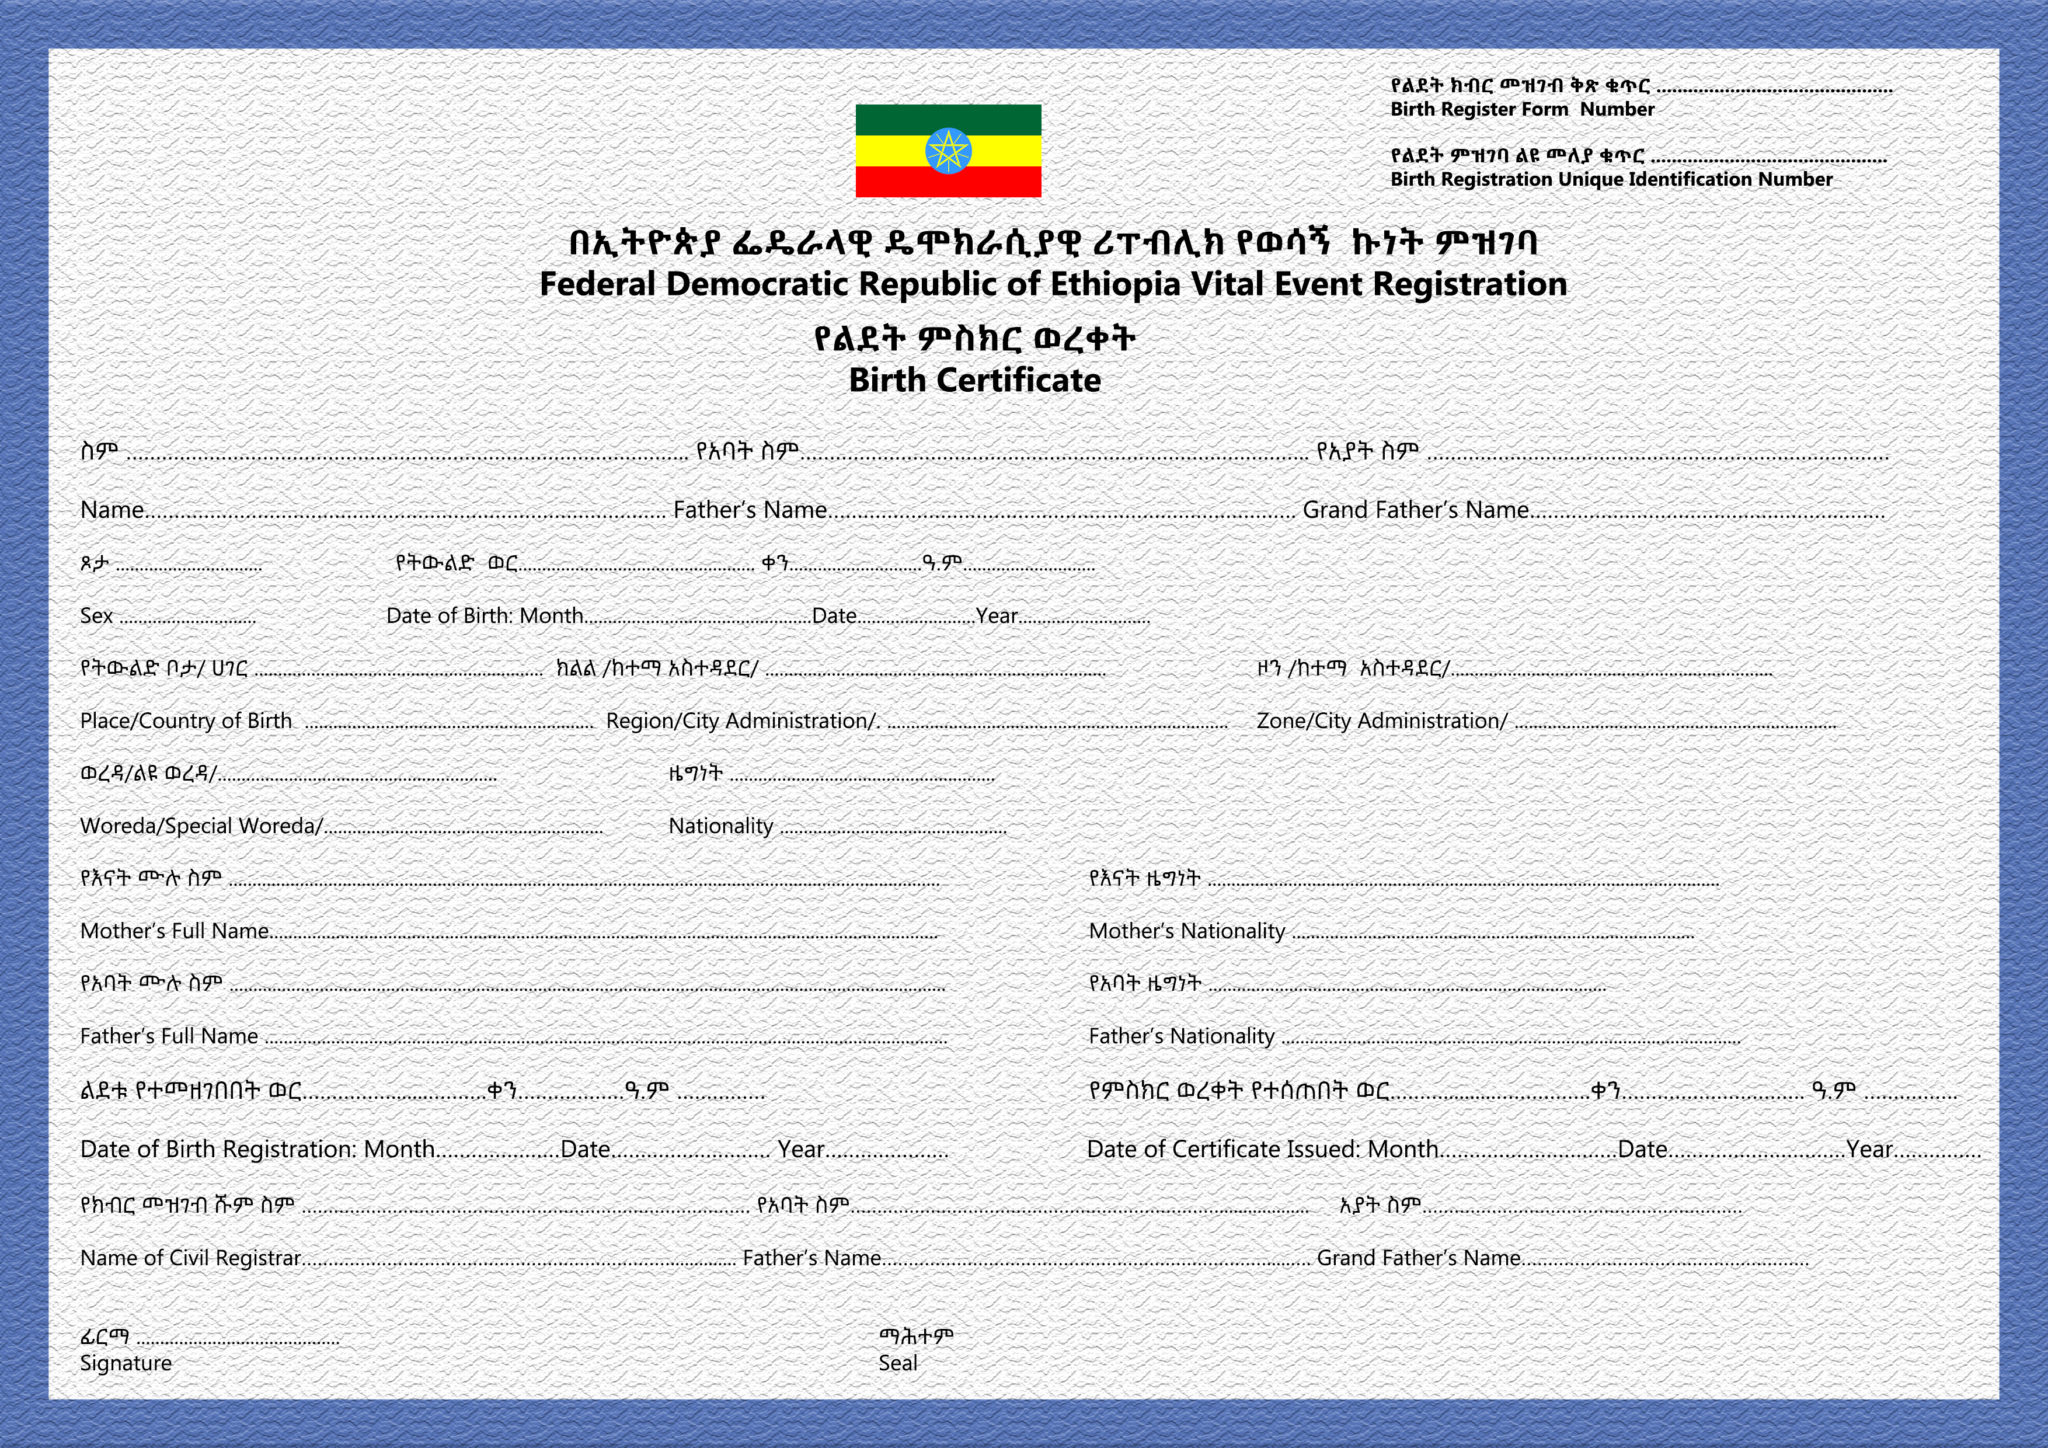 Birth Certificate Sample | Crvs Birth Marriage And Death Registration In Ethiopia Unicef Data